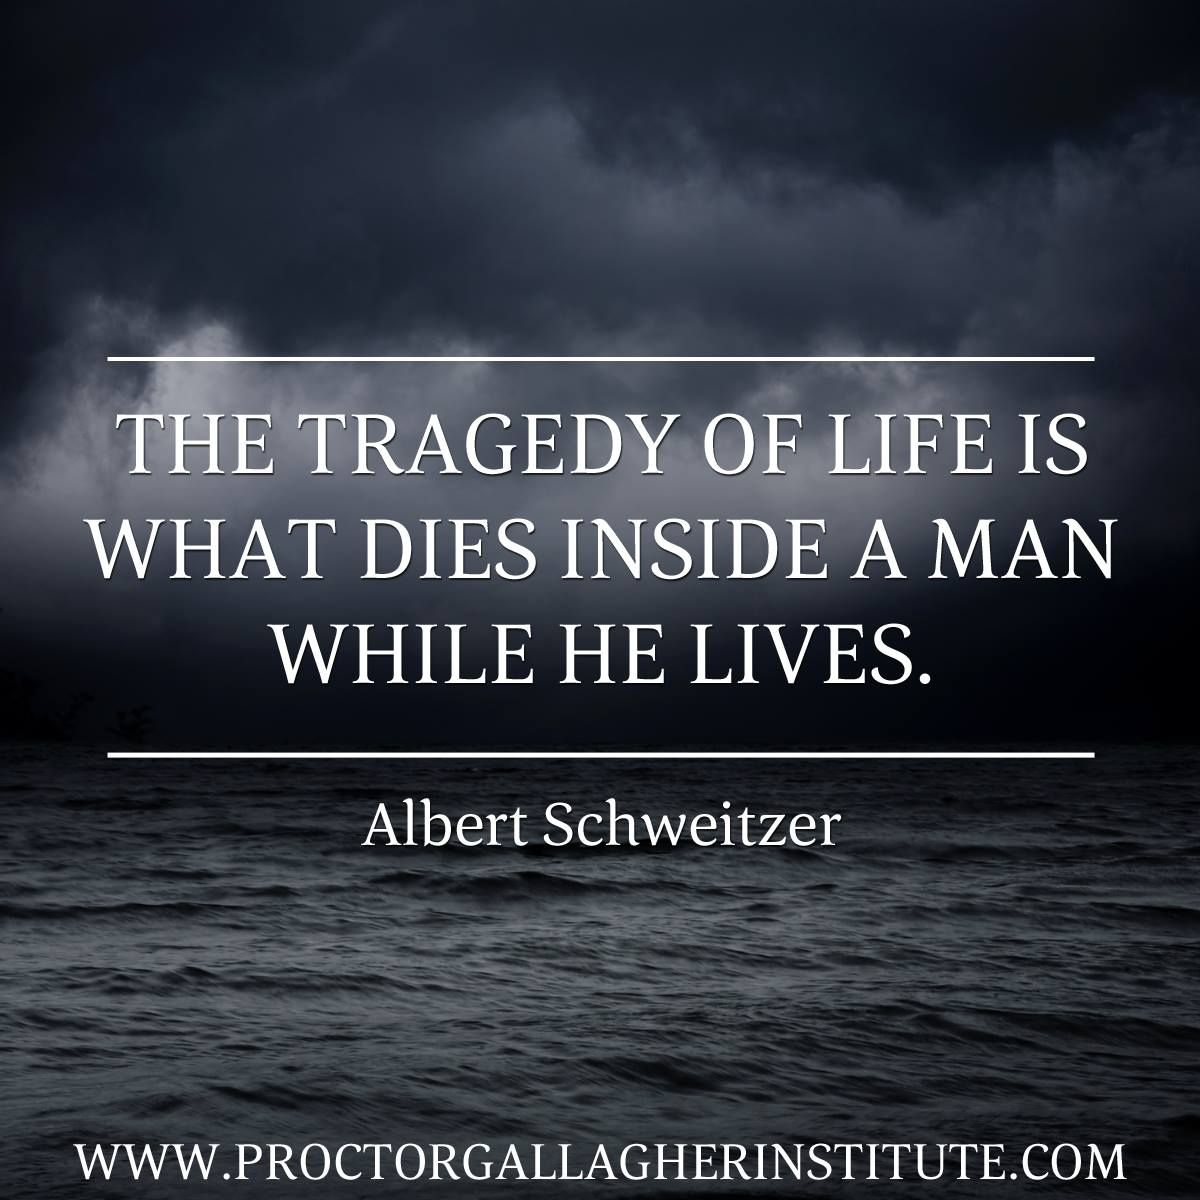 Wise Quotes About Life: The Tragedy Of Life Is What Dies Inside A Man While He